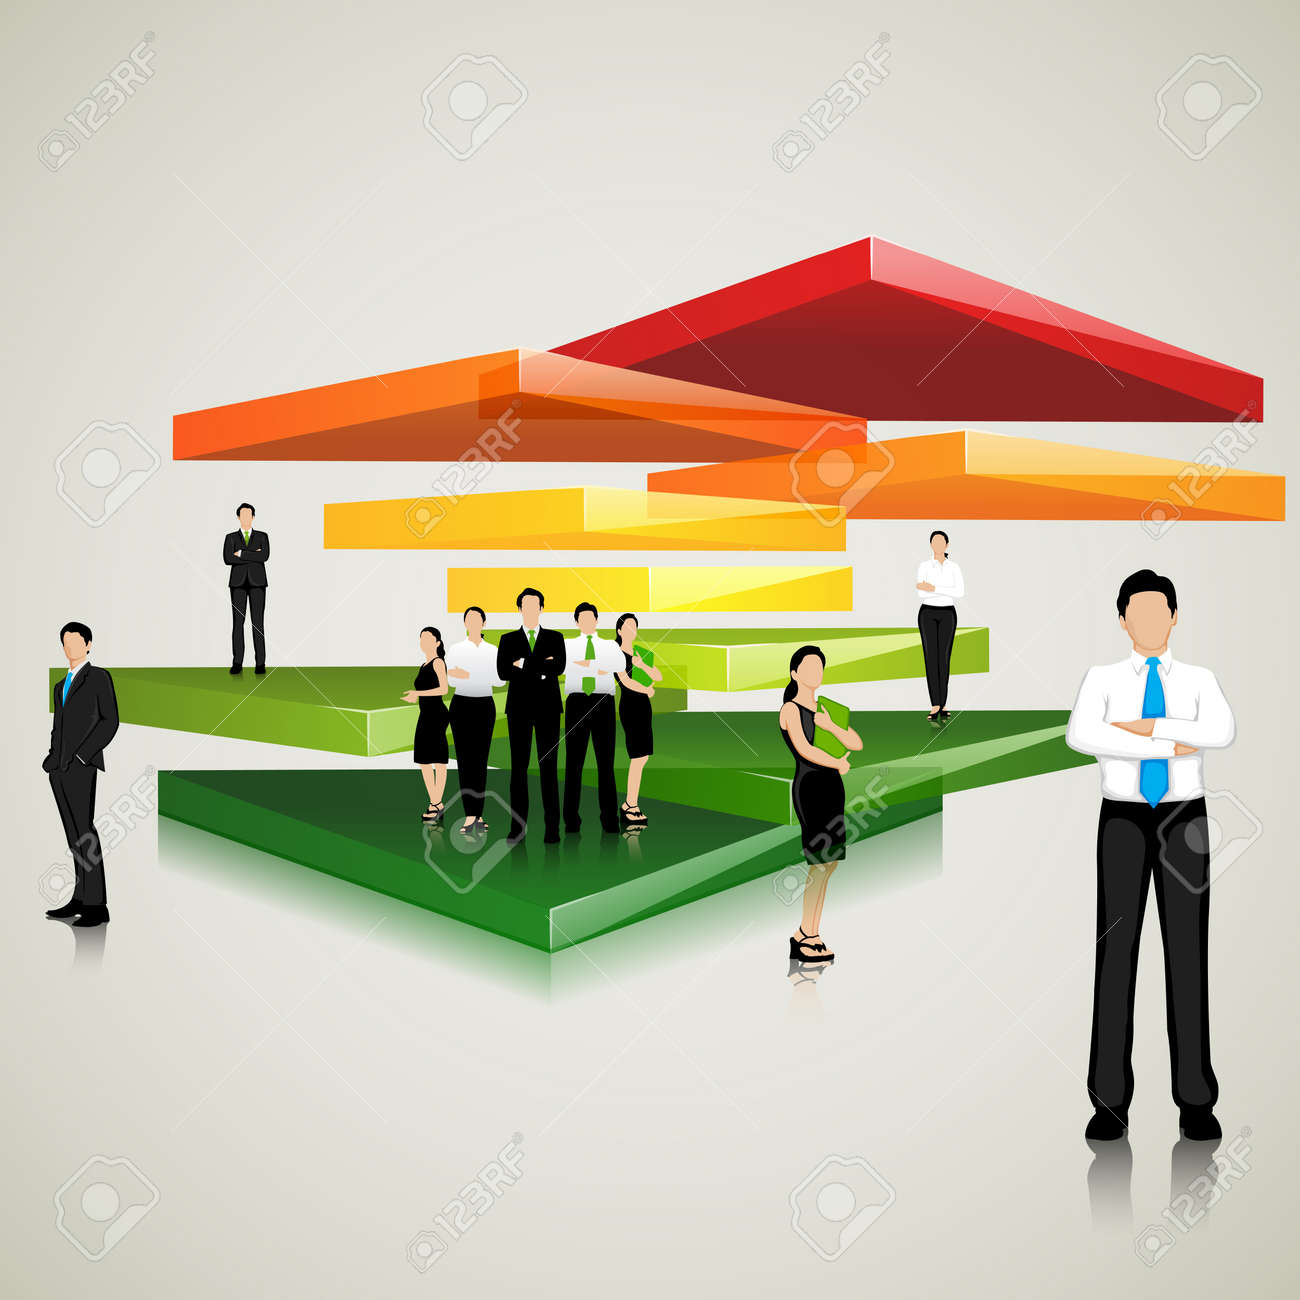 Business Team standing on Colorful Slab Stock Vector - 19157159